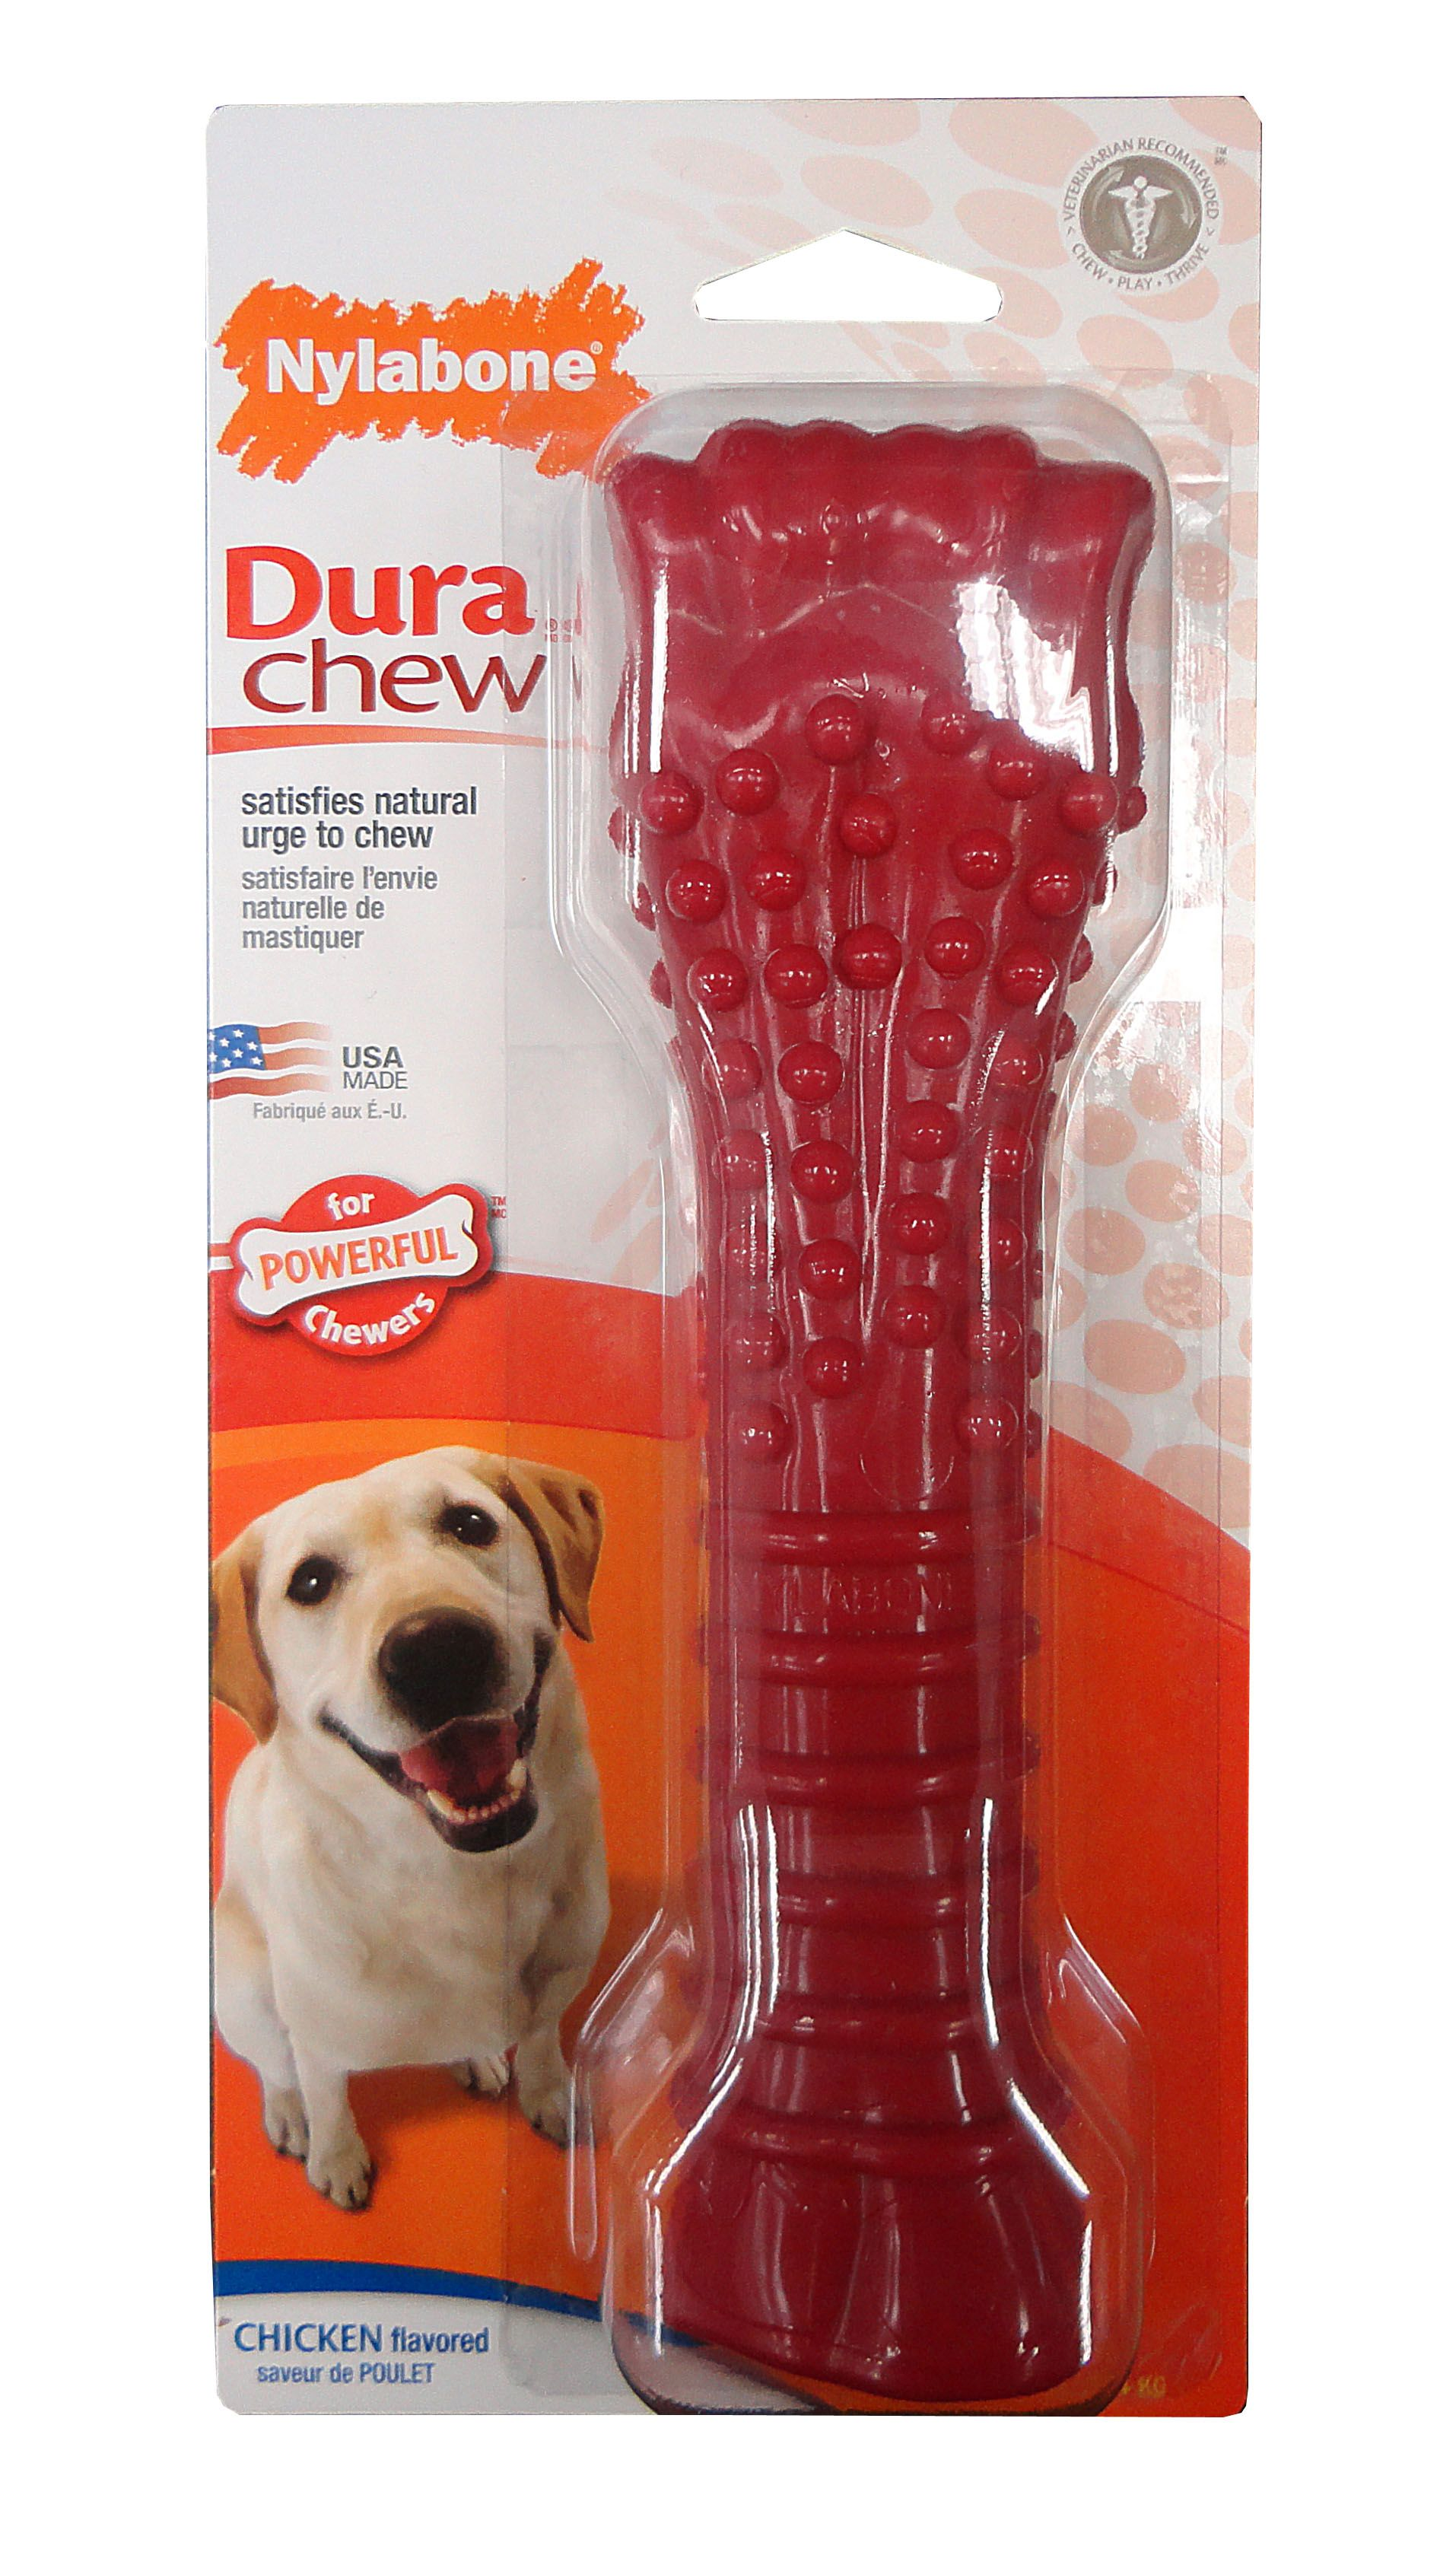 Flash Coupon Print Out A 3 Off Any Nylabone Dura Chew Toy Http